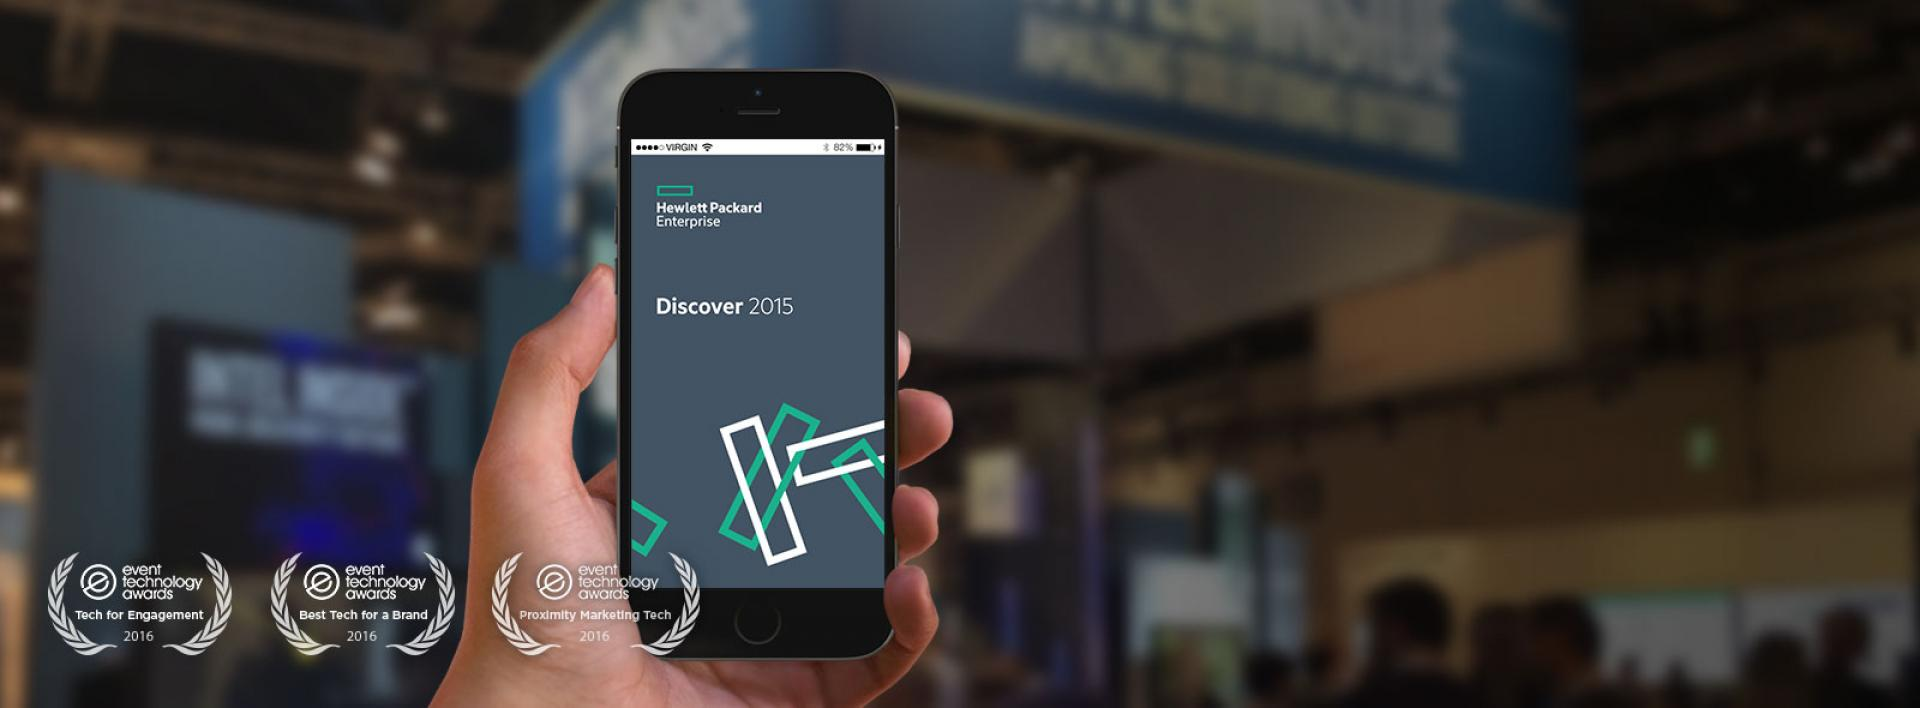 Hewlett Packard Enterprise Discover App